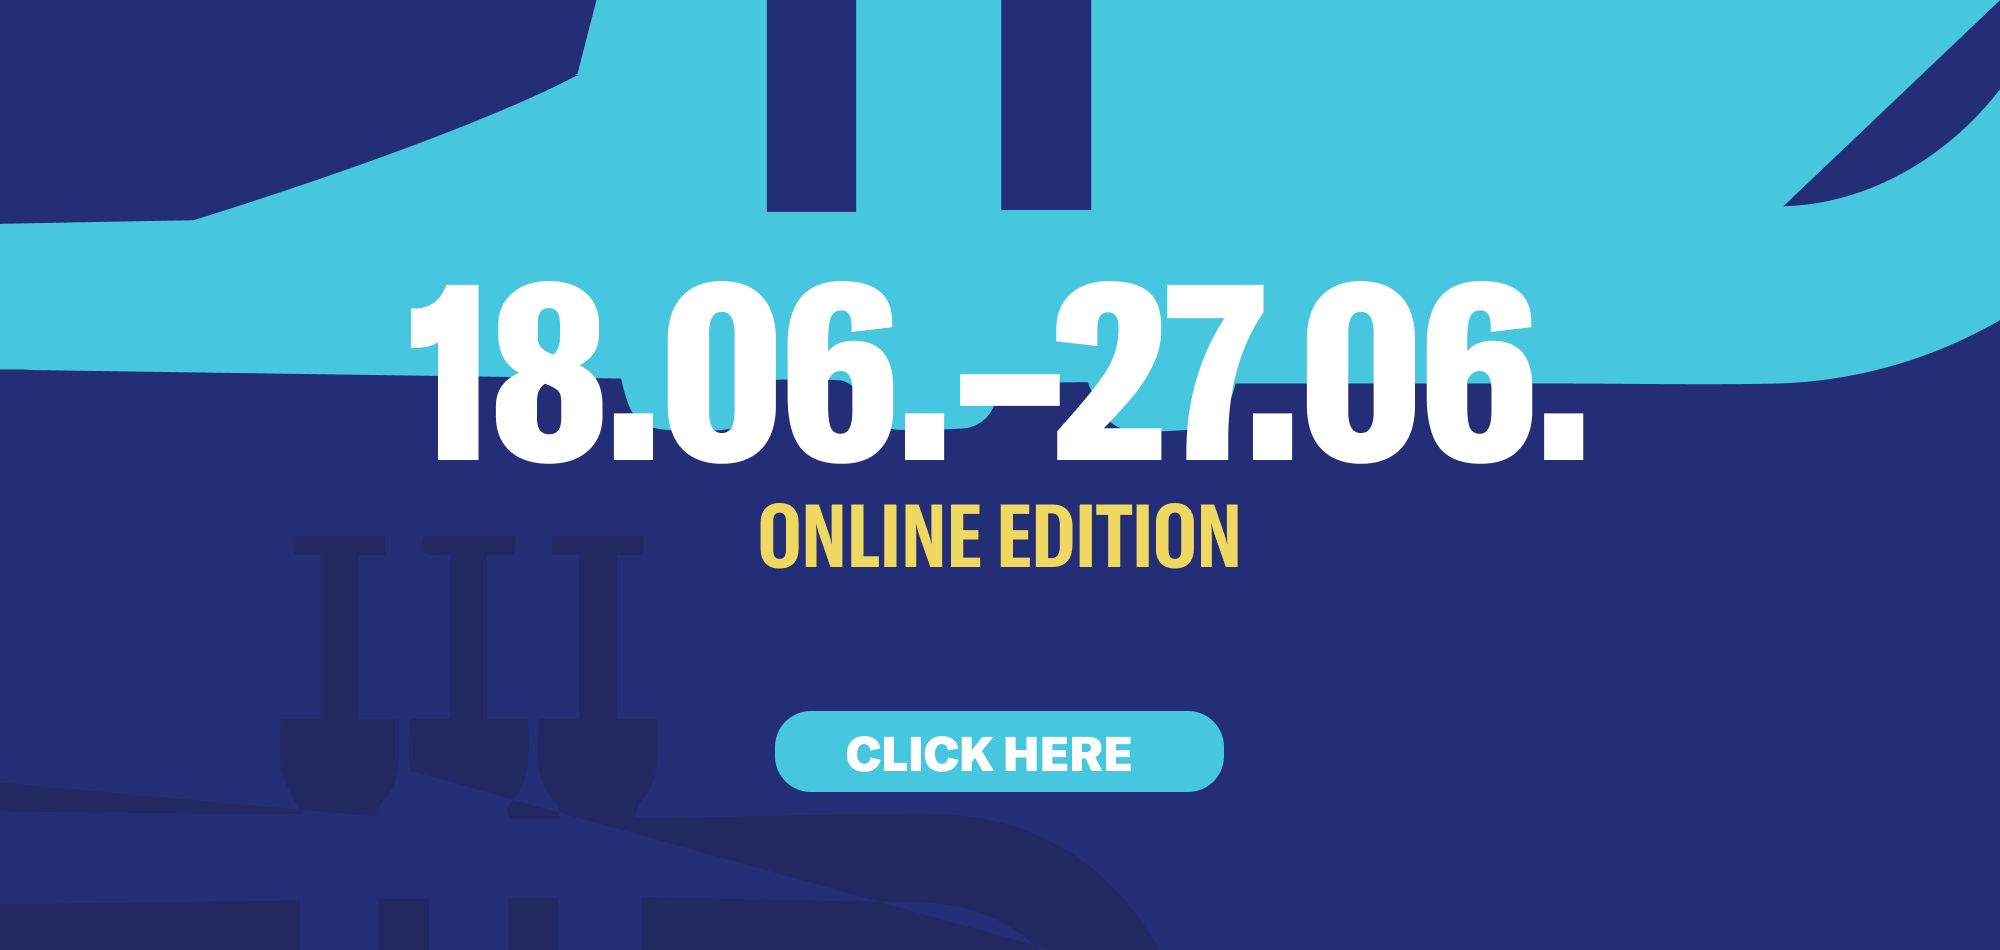 Morgenland Festival Online Edition 18.06.-27.06.